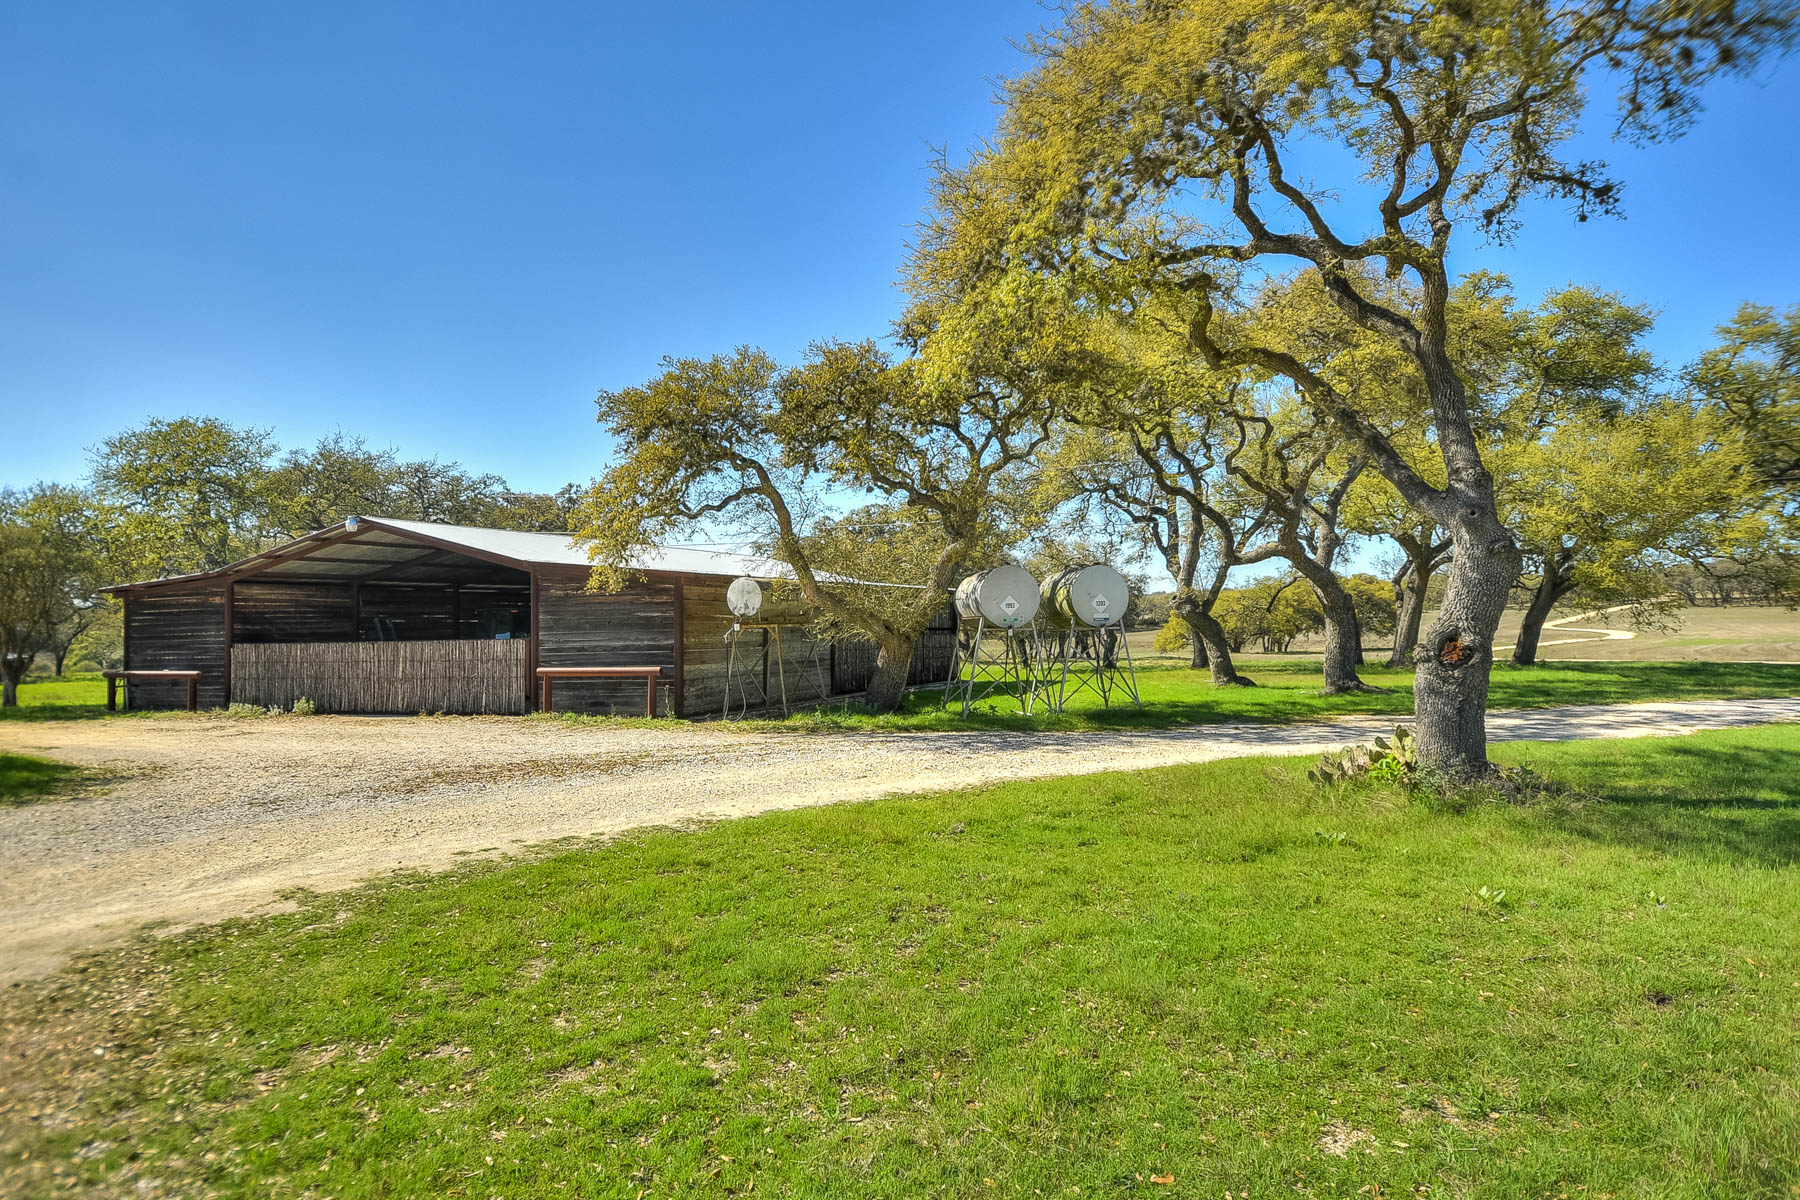 Additional photo for property listing at The S Bar Ranch in Boerne 338 Ammann Rd Boerne, Texas 78006 United States